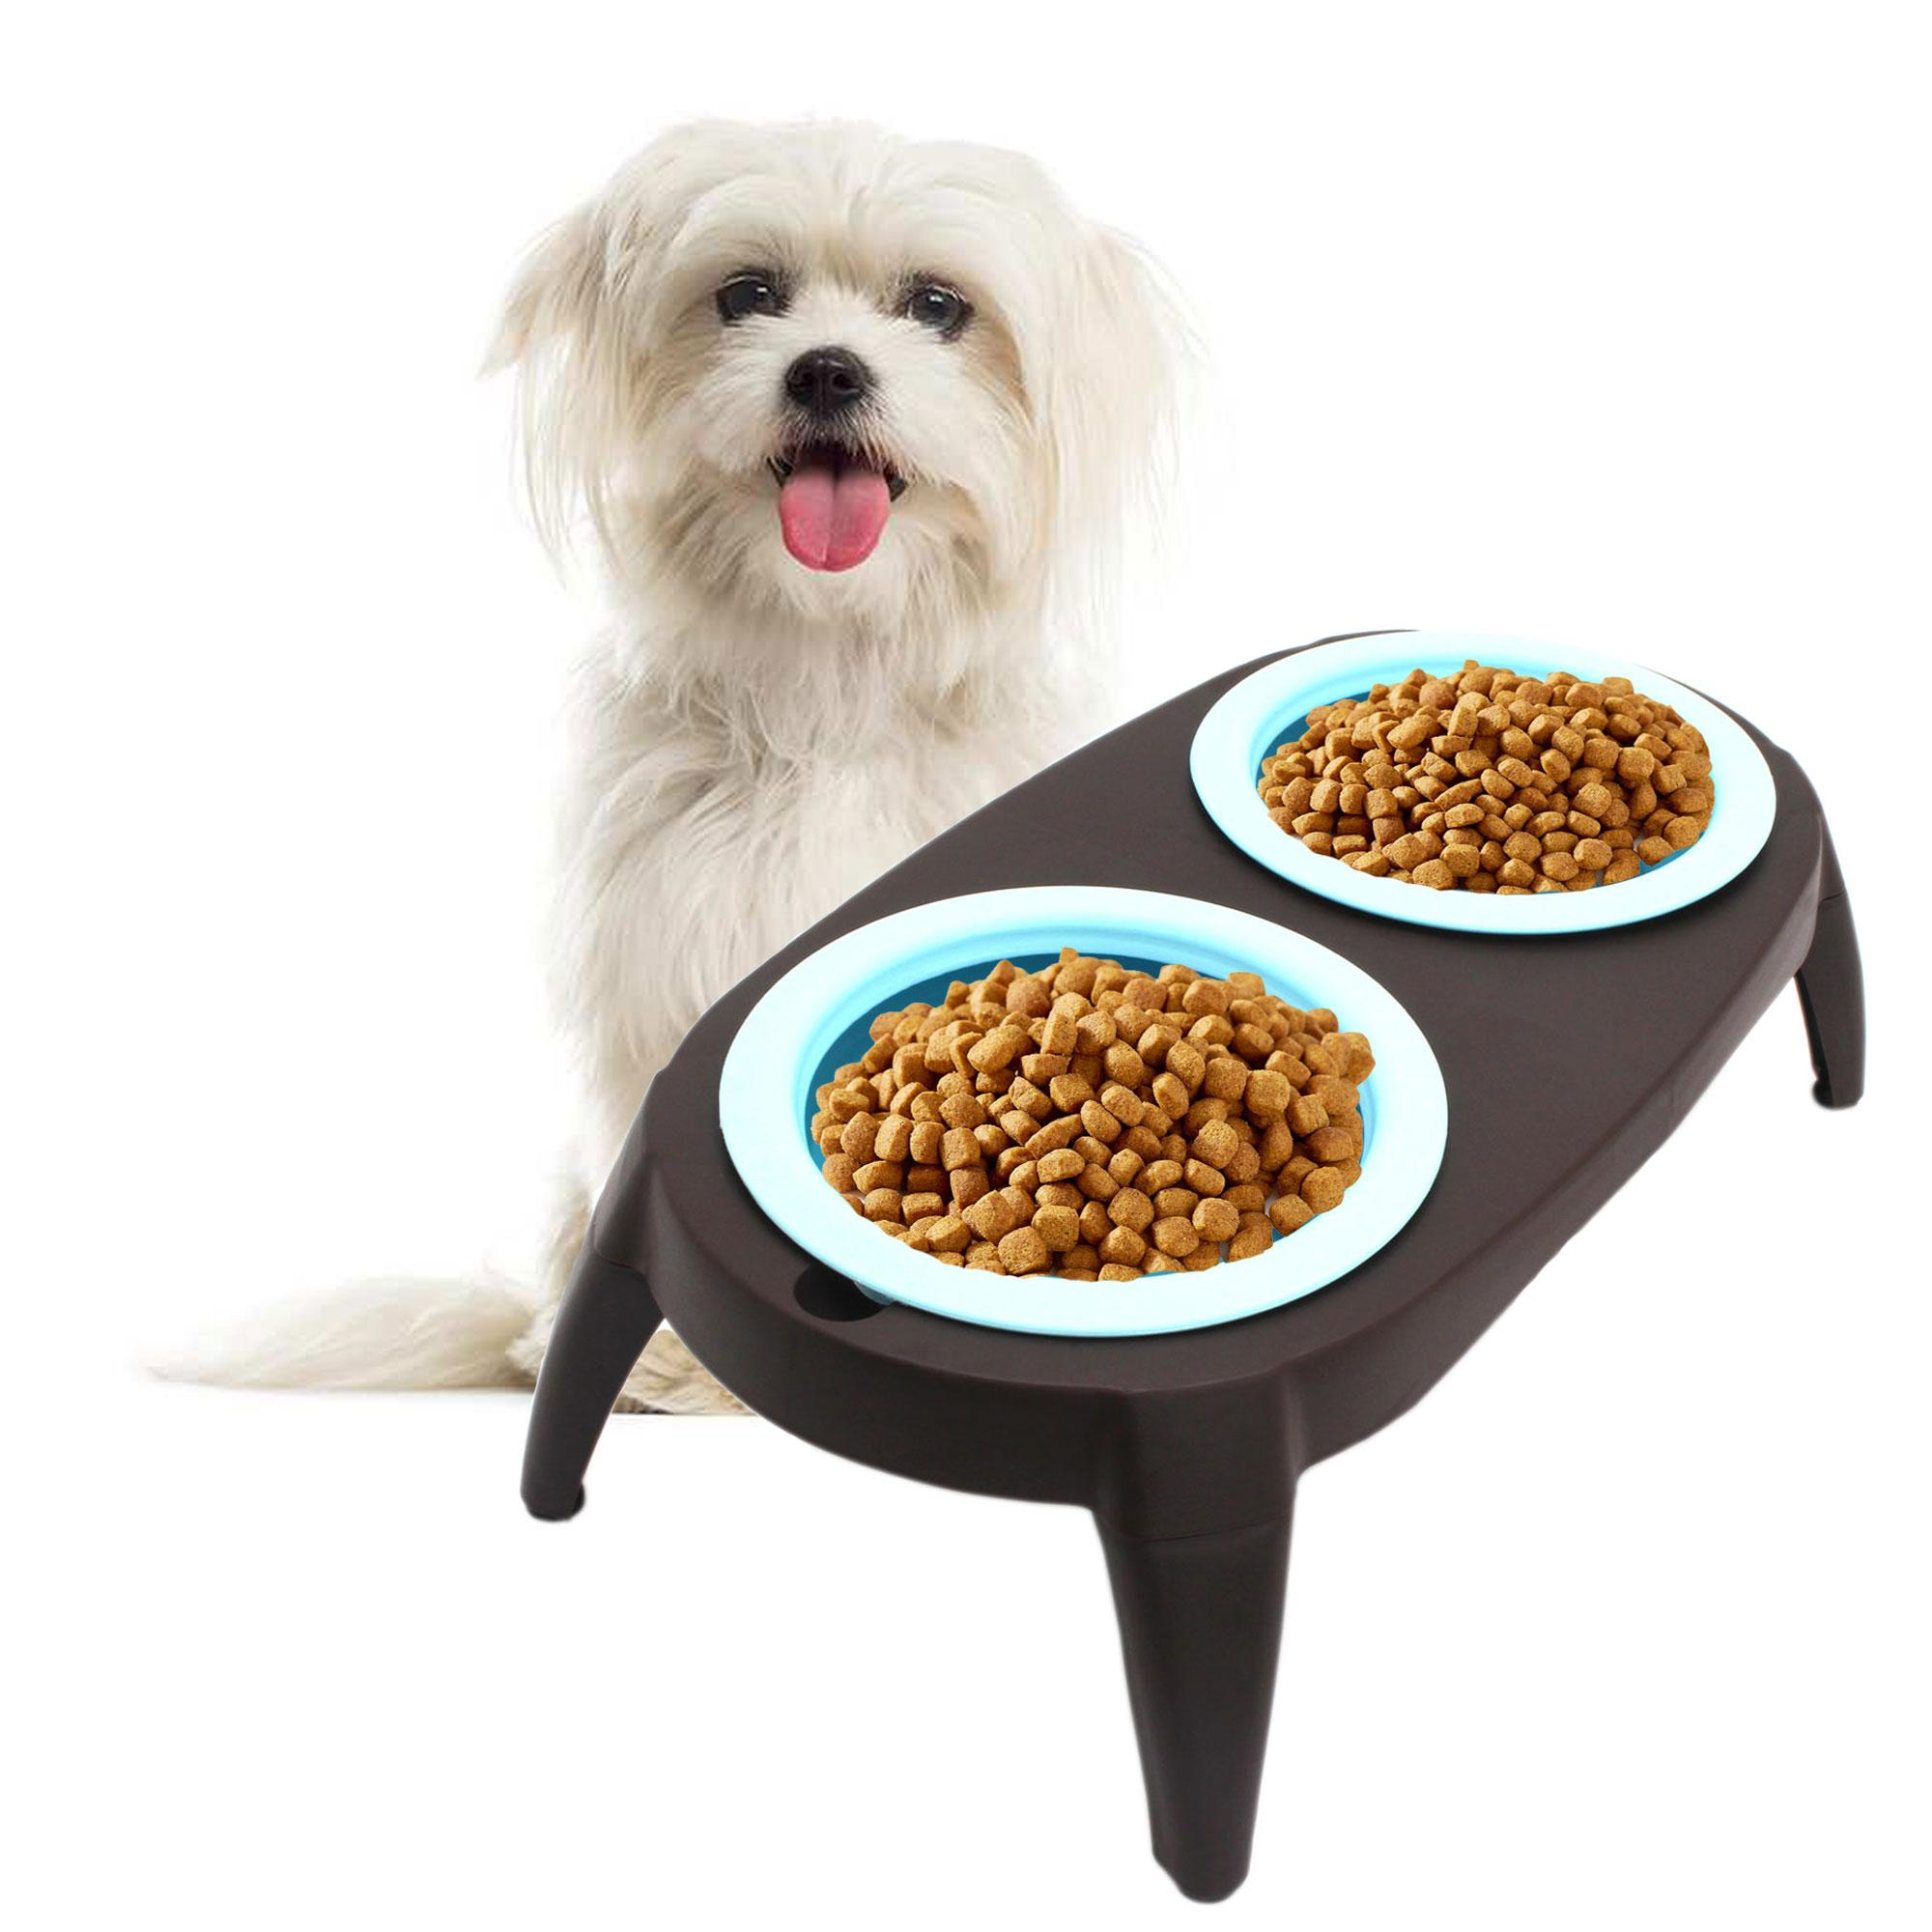 Collapsible Silicon Pet Feeder Bowl With Stand (blue) By Gonzalez General Merchandise.